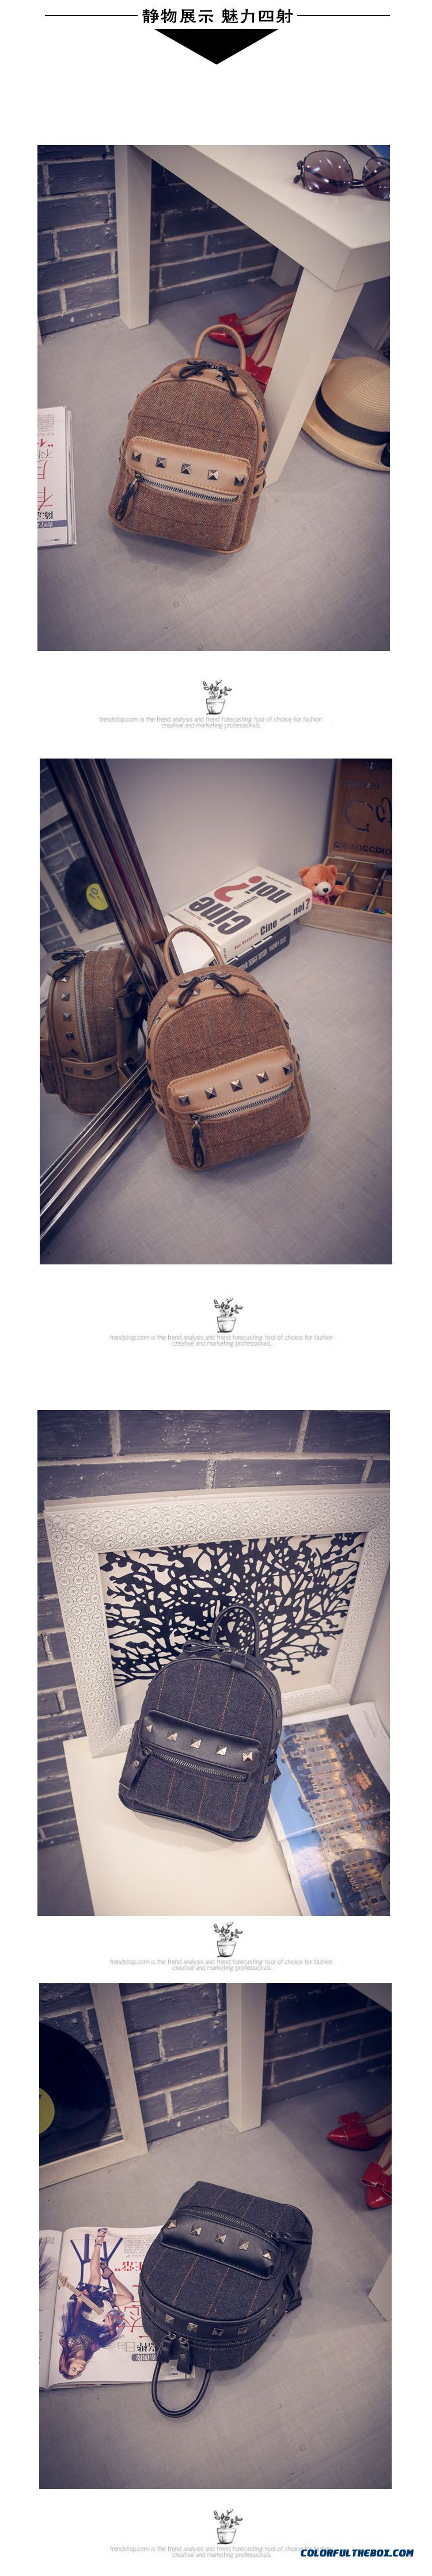 c582275ce3ca New Winter Plaid Women Korean College Style Schoolbags Simple Woolen Mini  Backpack - detail images ...